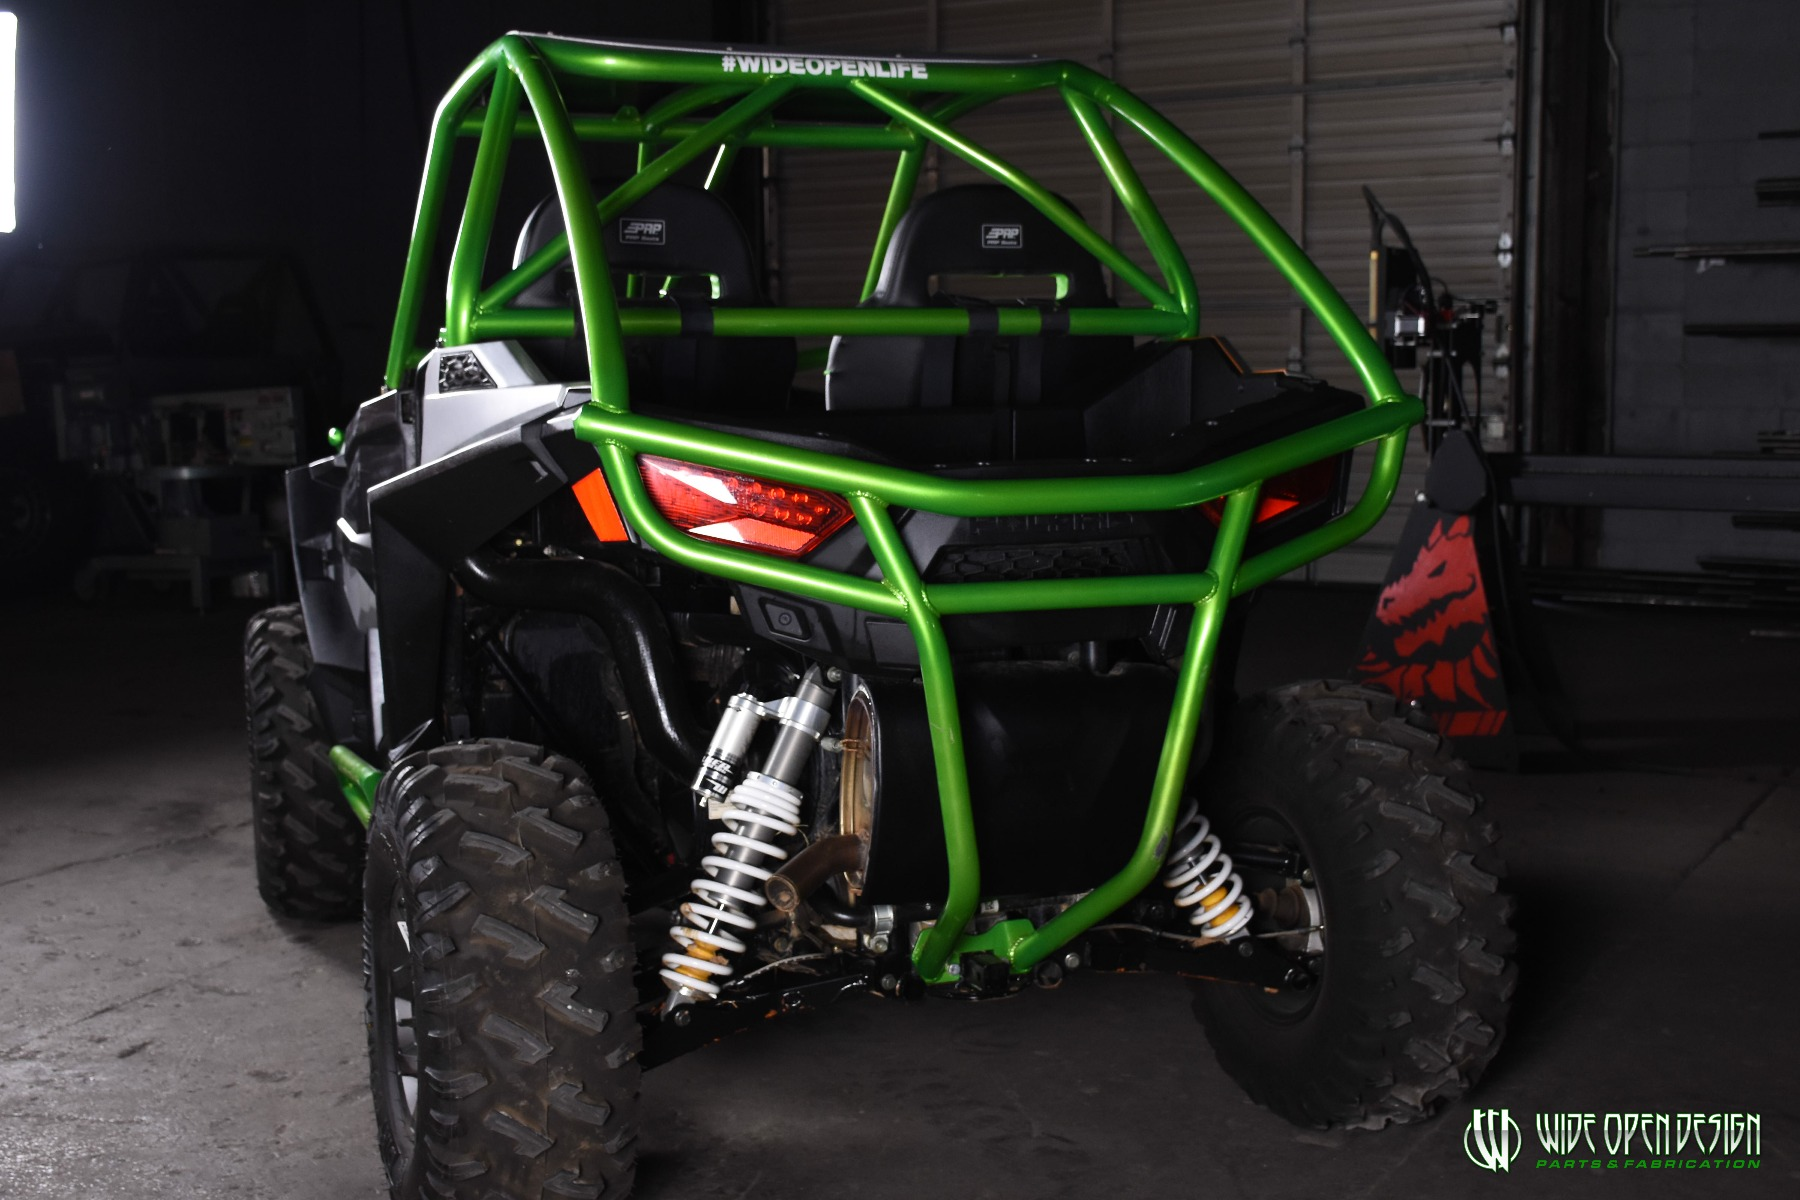 Jason's 1000s RZR with Wide Open Design Rolled Roof Cage, Front Bumper with Tie In, and Rocker Guards 26